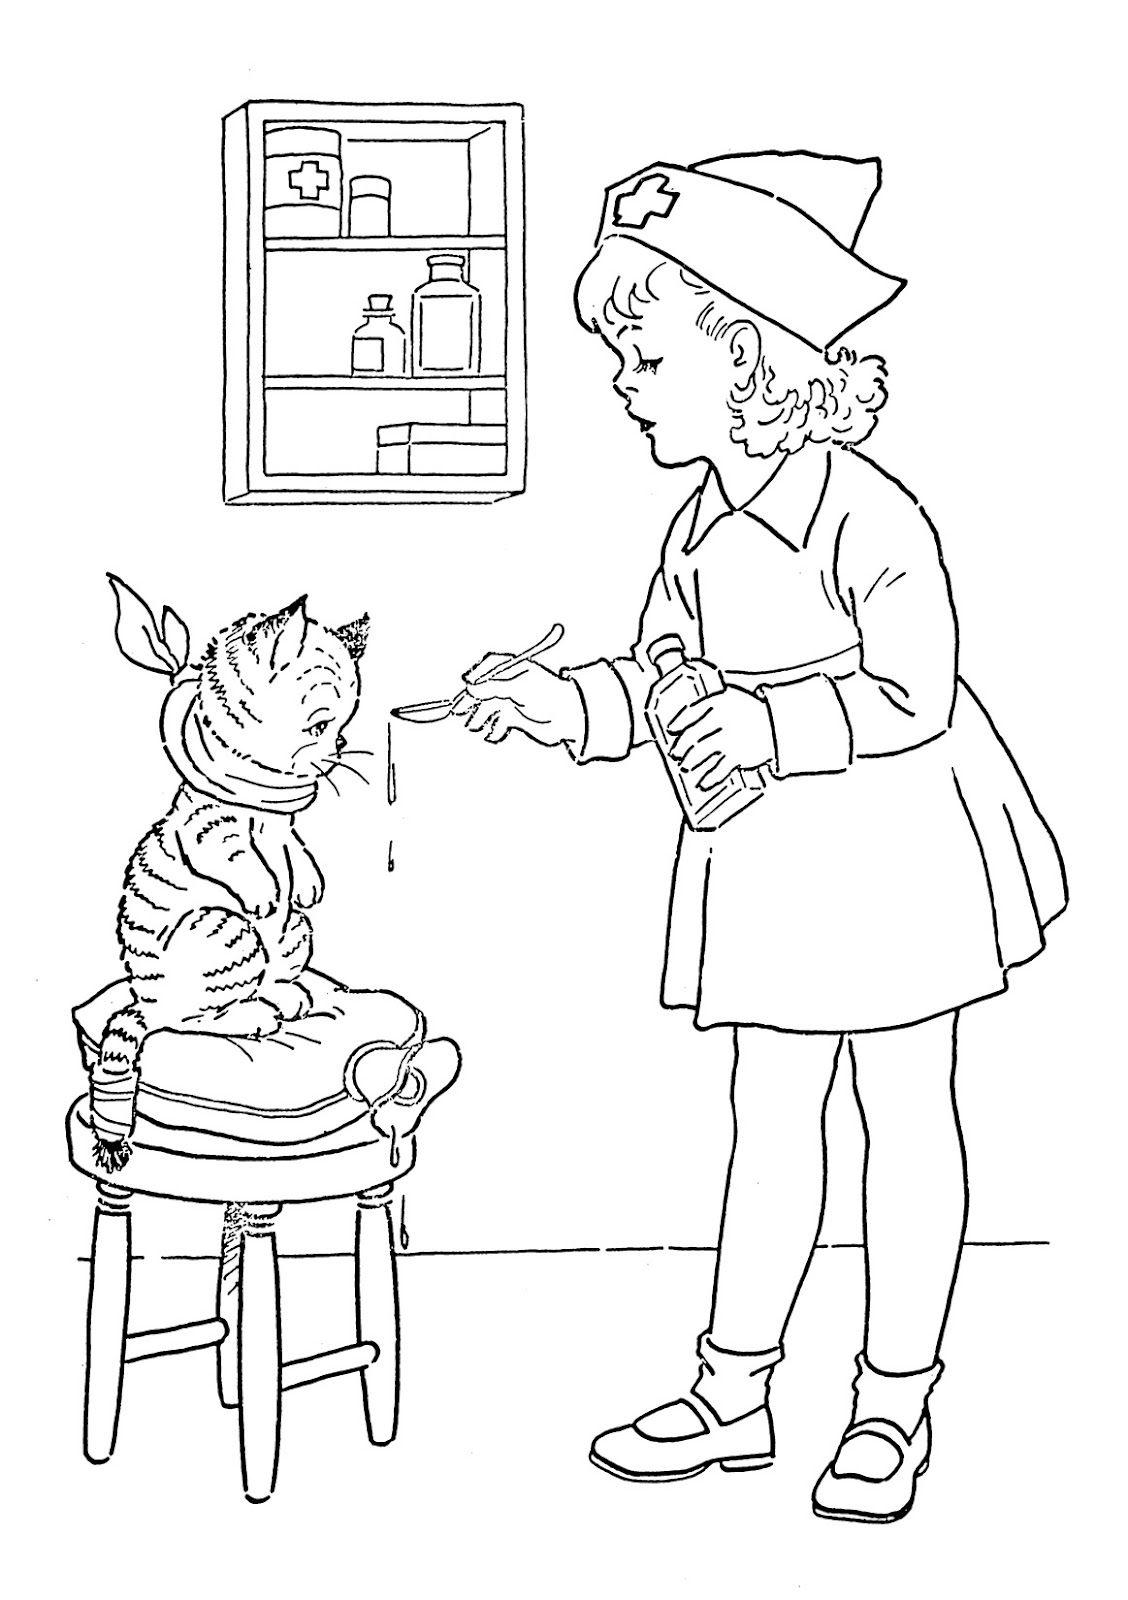 Printable coloring pages for 12 year olds - Kids Vintage Printable Coloring Page Lil Nurse